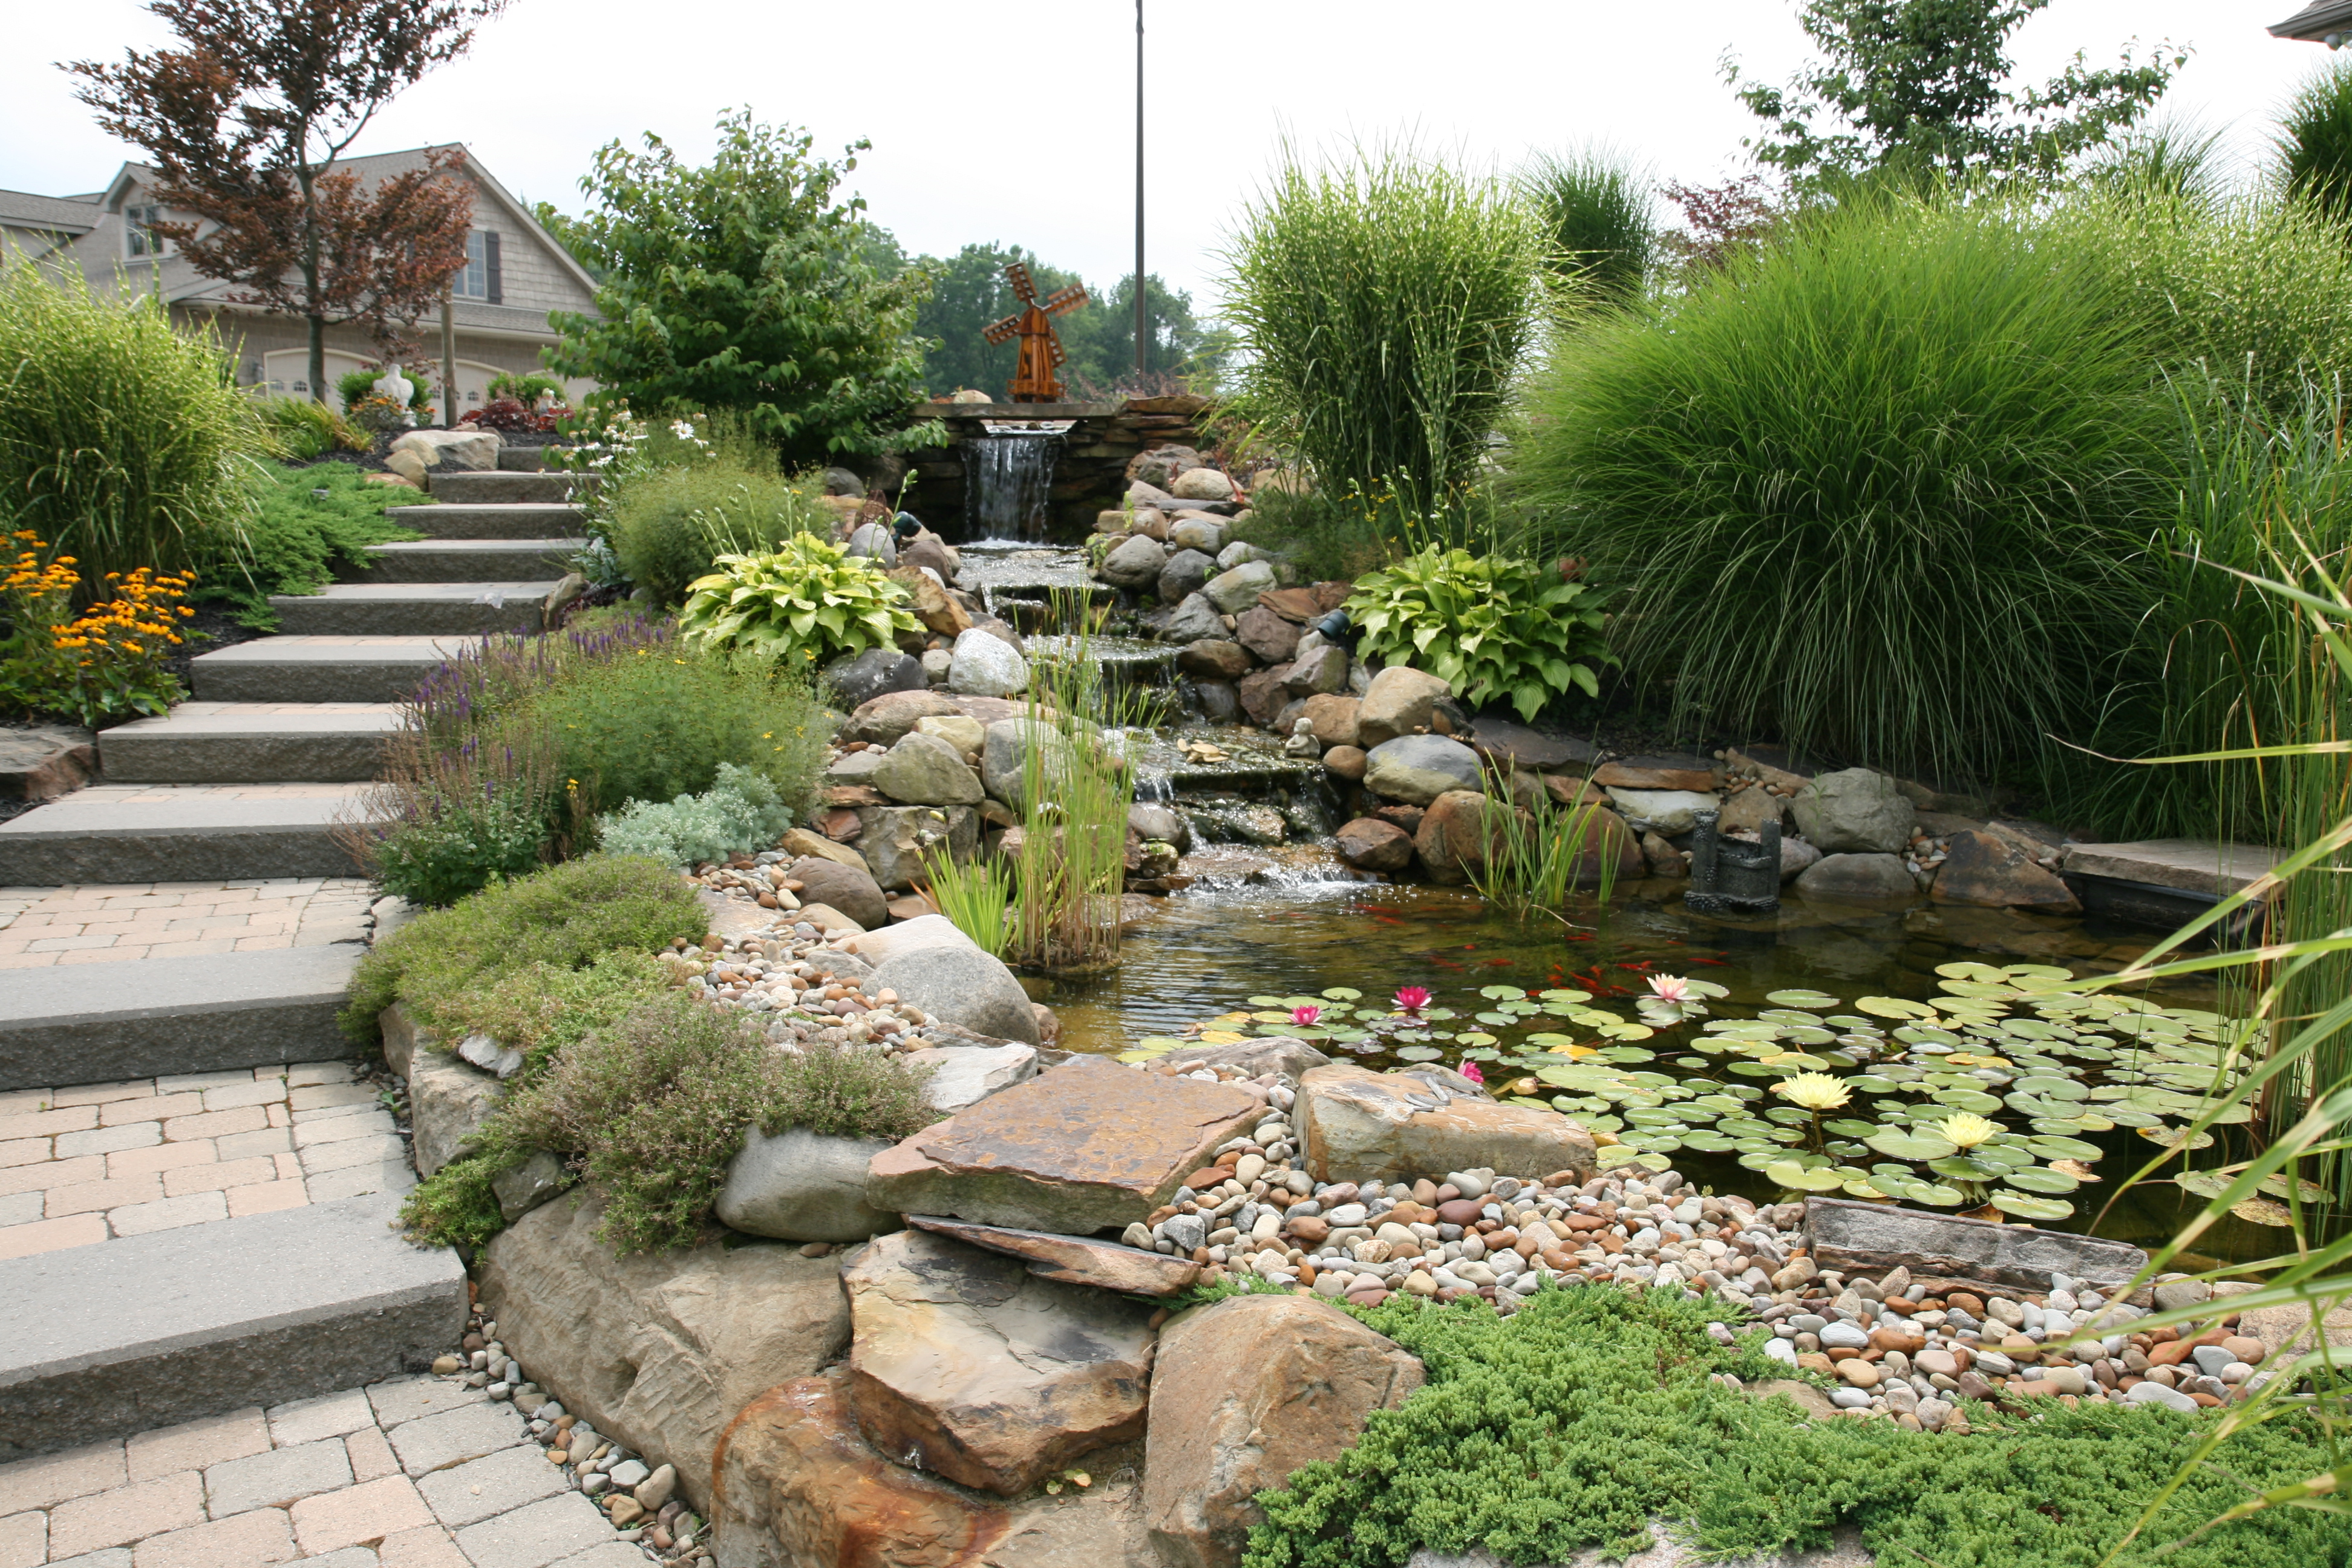 Beautiful landscape created by lawn care professionals in Lorain, OH